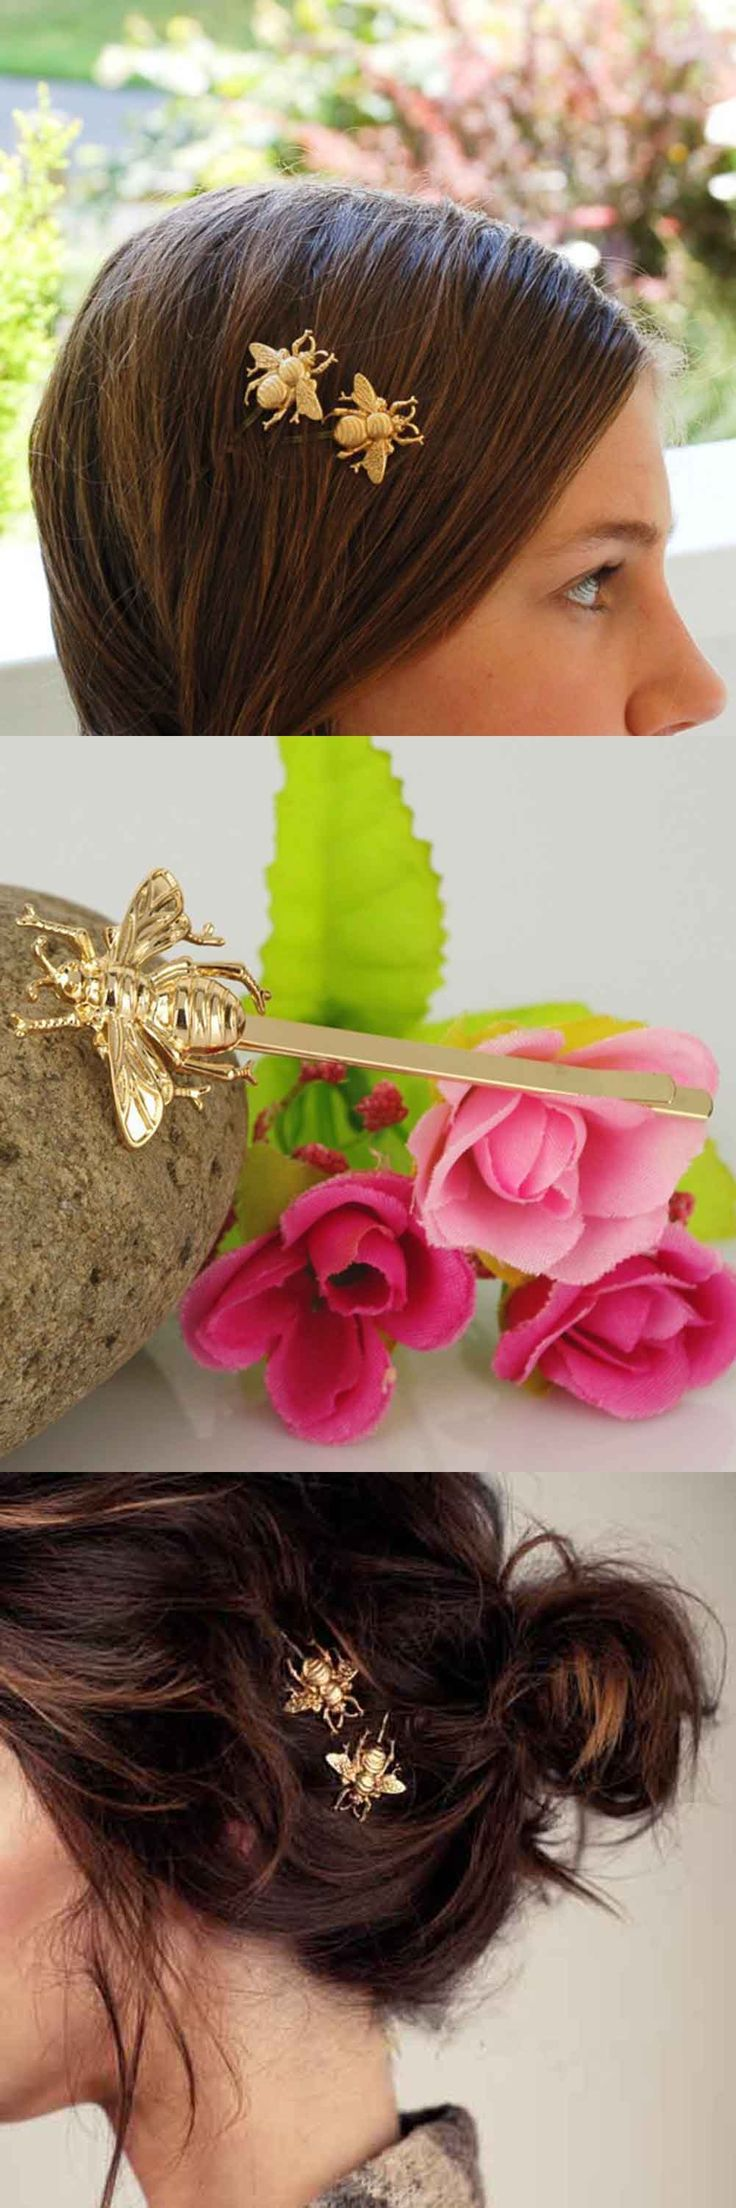 1pc Hair Clip Stylish Little Bee Shape Hairpin Hair Accessories For Women Solid Color Bow Pinzas Para El Cabello